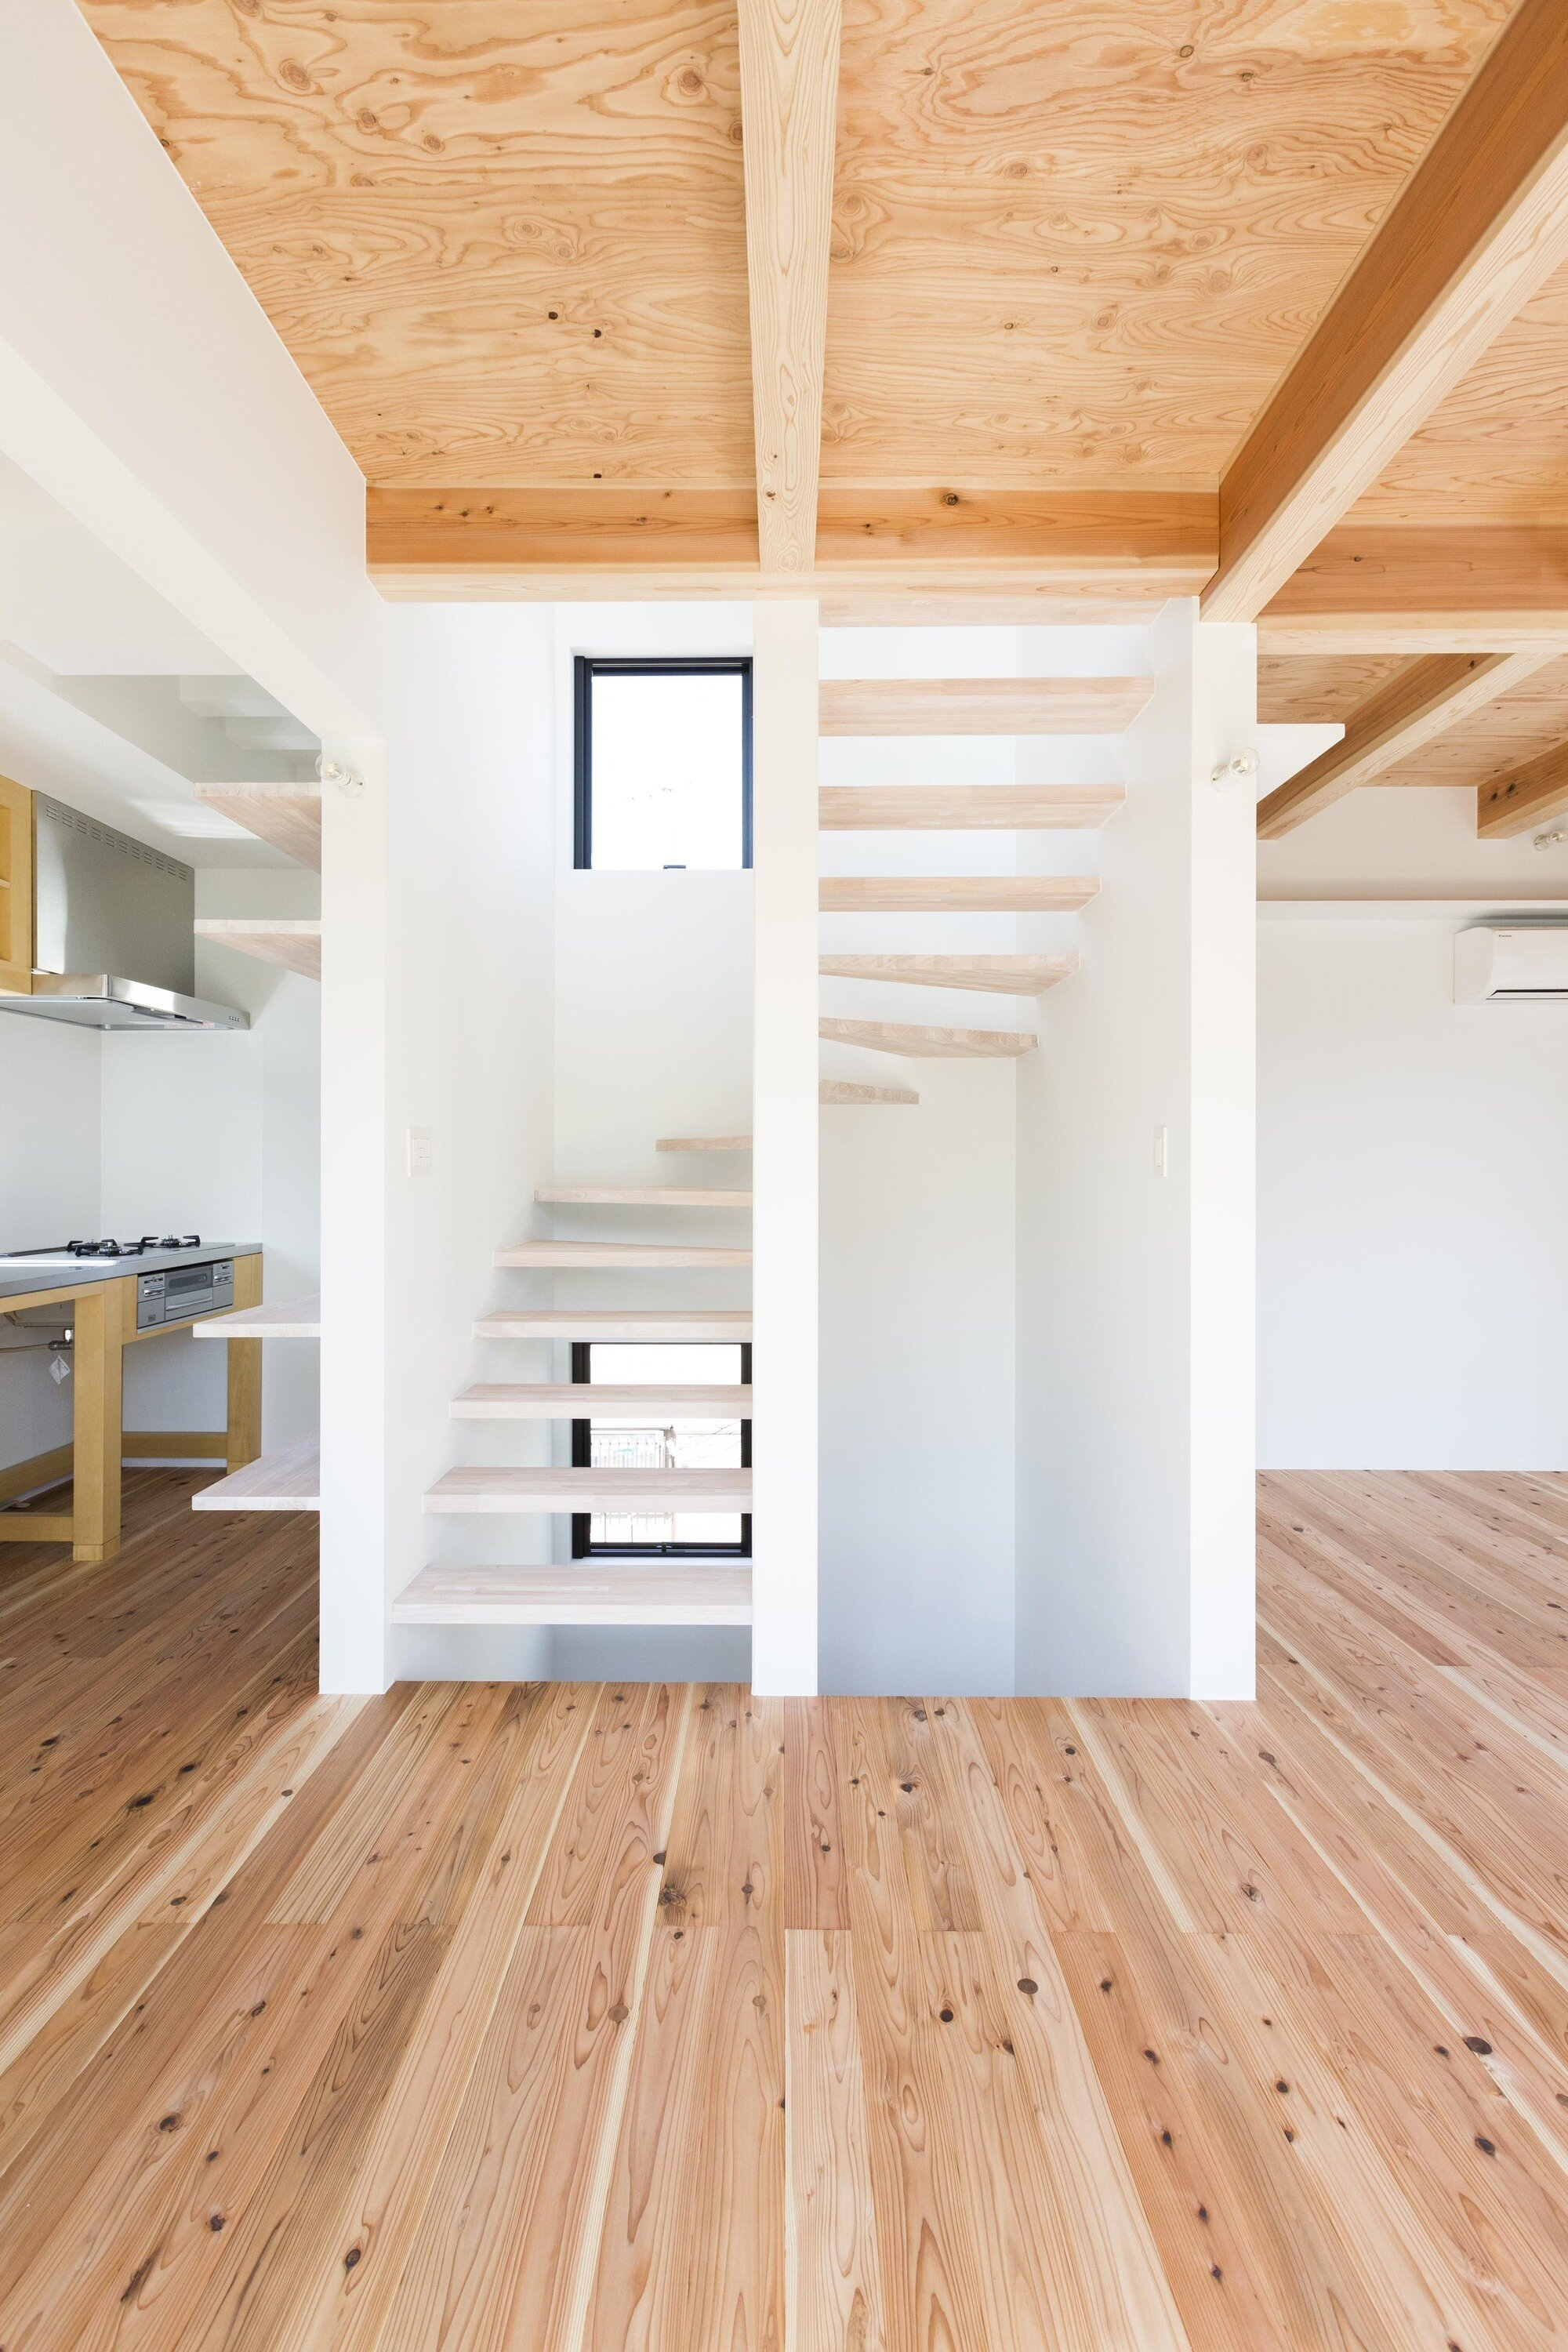 Hibarigaoka S house - Small Japanese House - Kaida Architecture Design Office - Japan - Staircase - Humble Homes